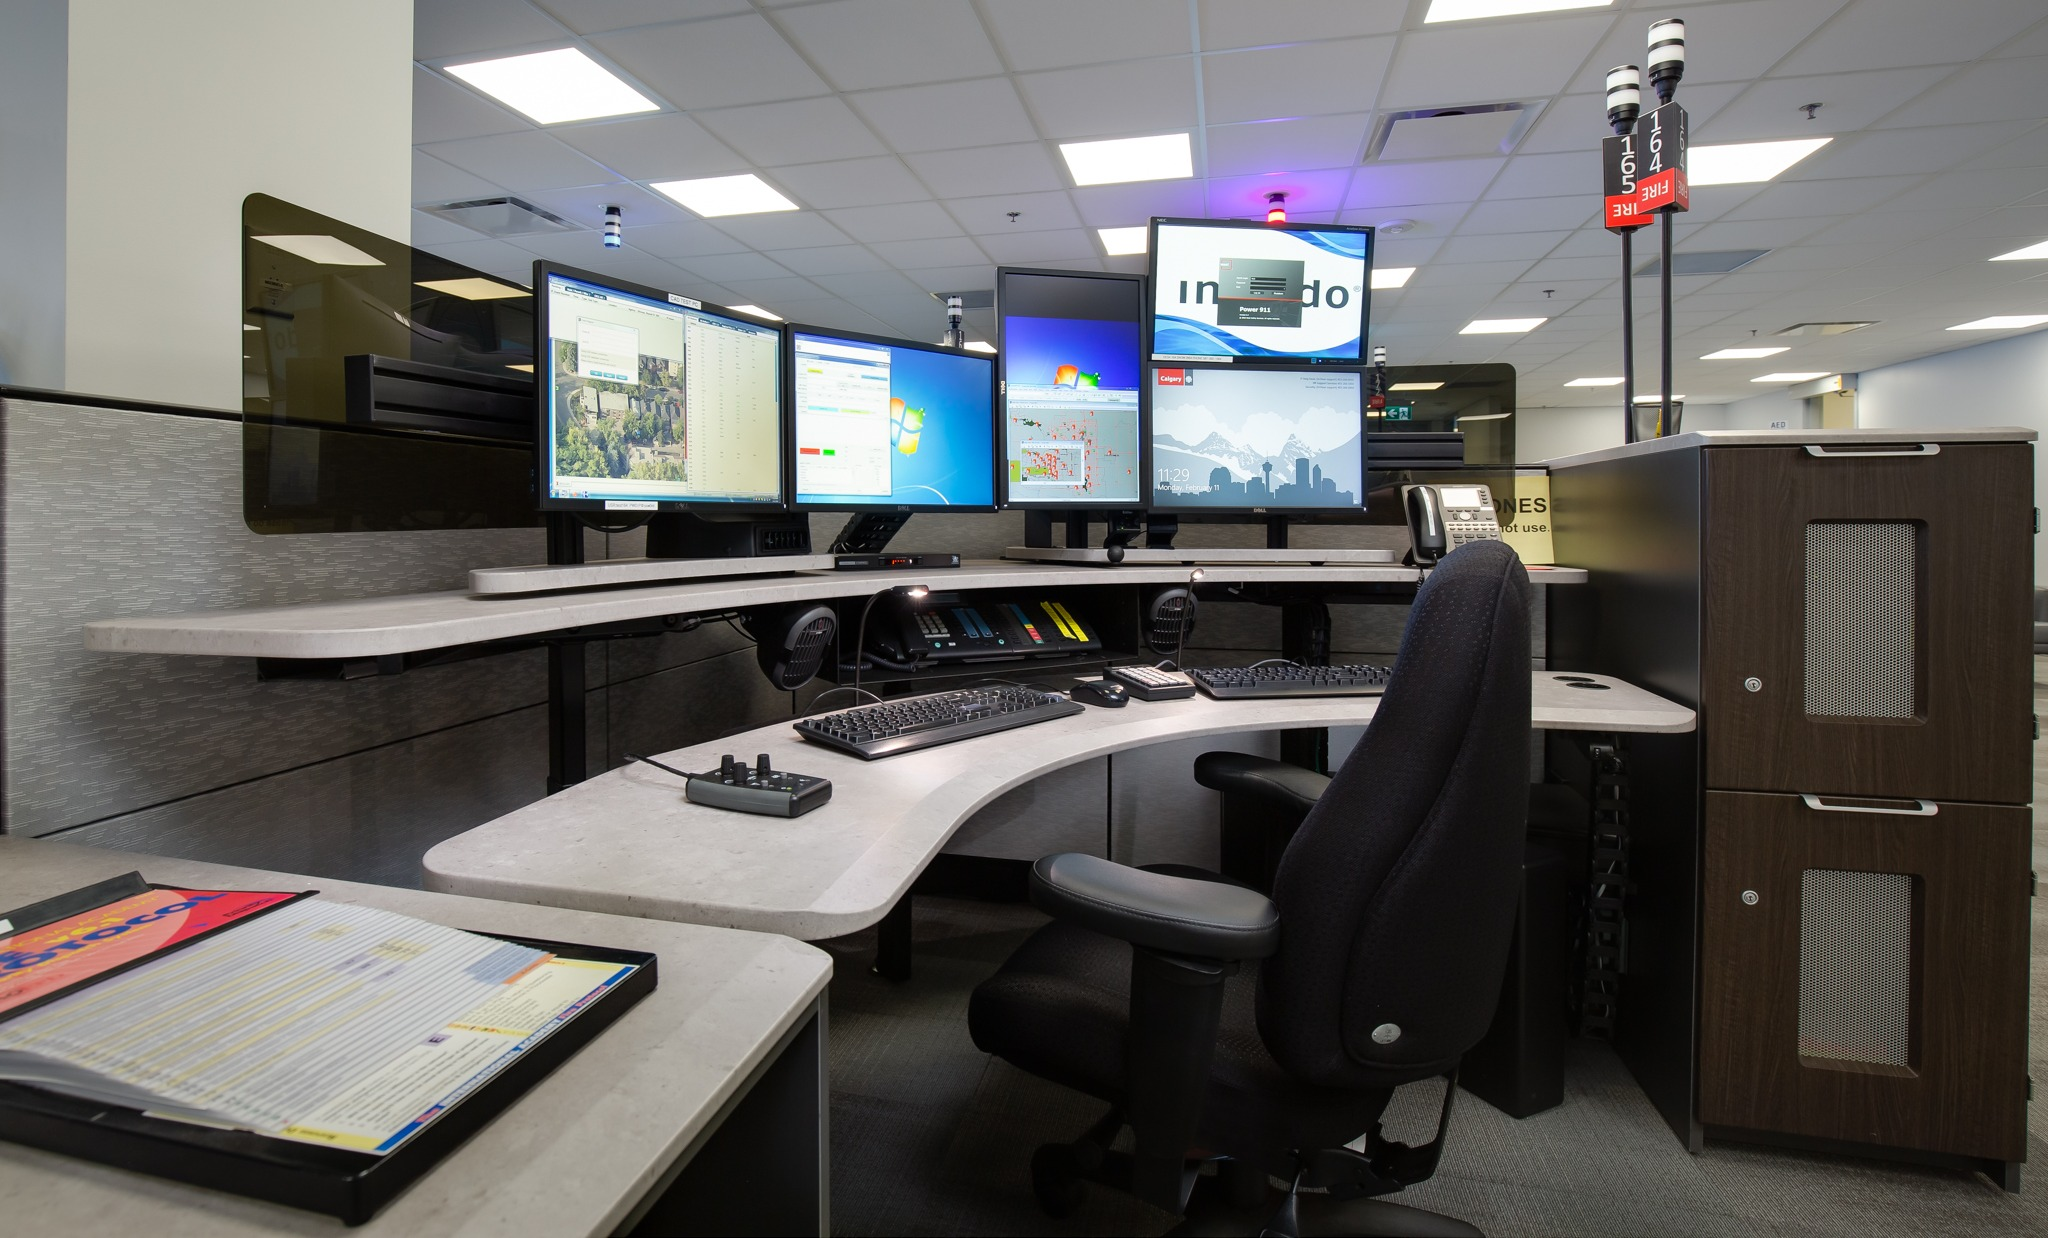 Xybix Dispatch Consoles, Command & Control Furniture, Healthcare Imaging Desks